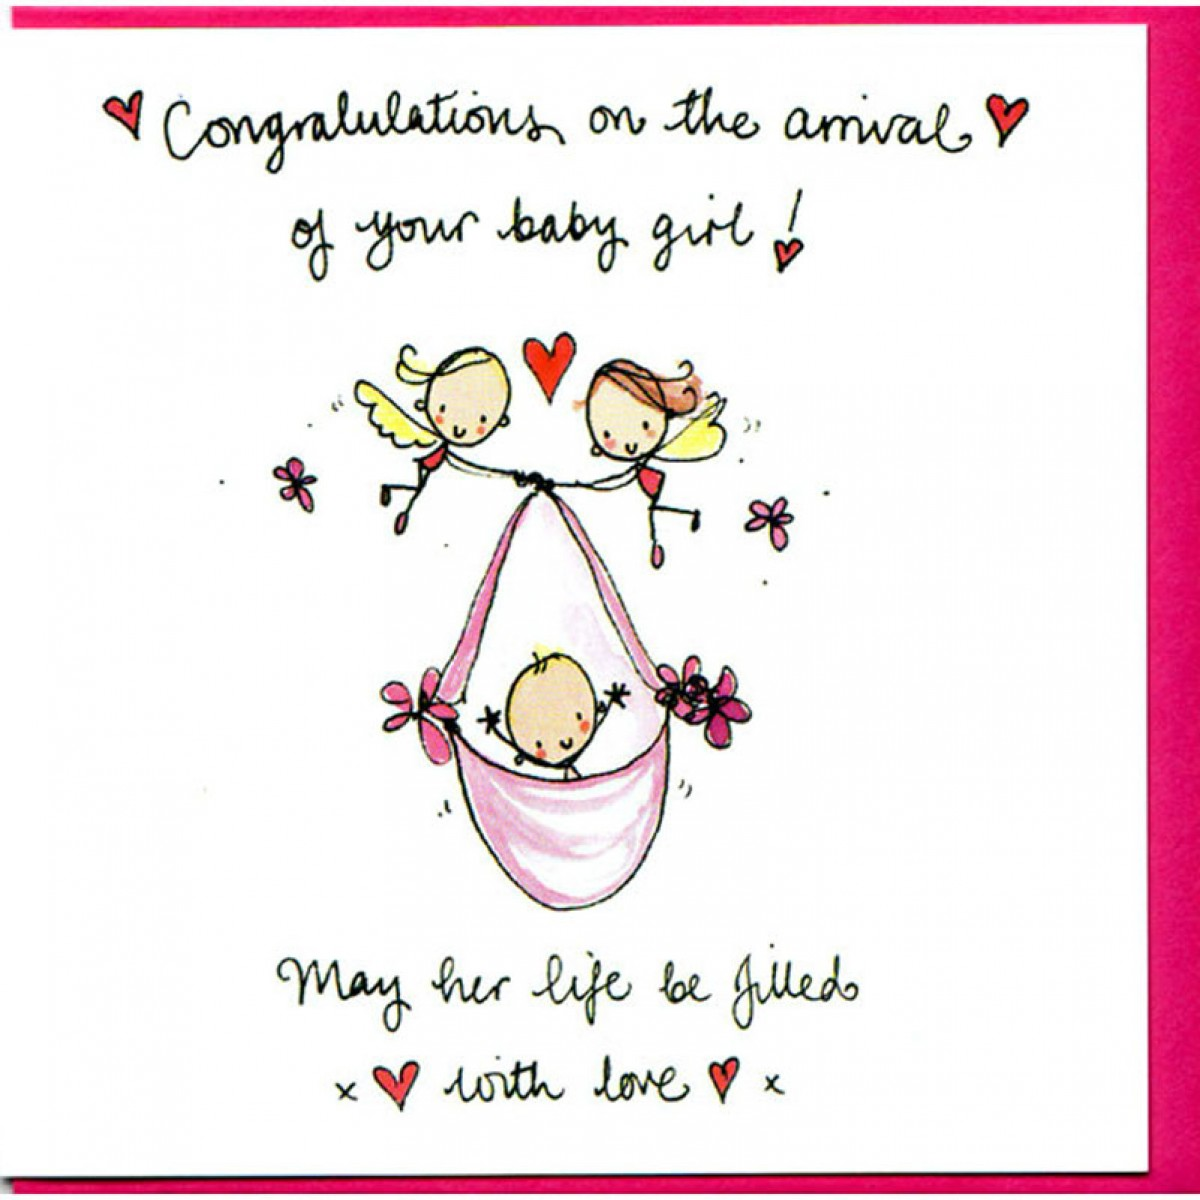 Pleasing Your Baby Card Congratulations On Arrival Congratulations On Arrival Your Baby May Her Life Be Congratulations On Your Baby Girl Italian Congratulations On Your Baby Girl S baby shower Congratulations On Your Baby Girl